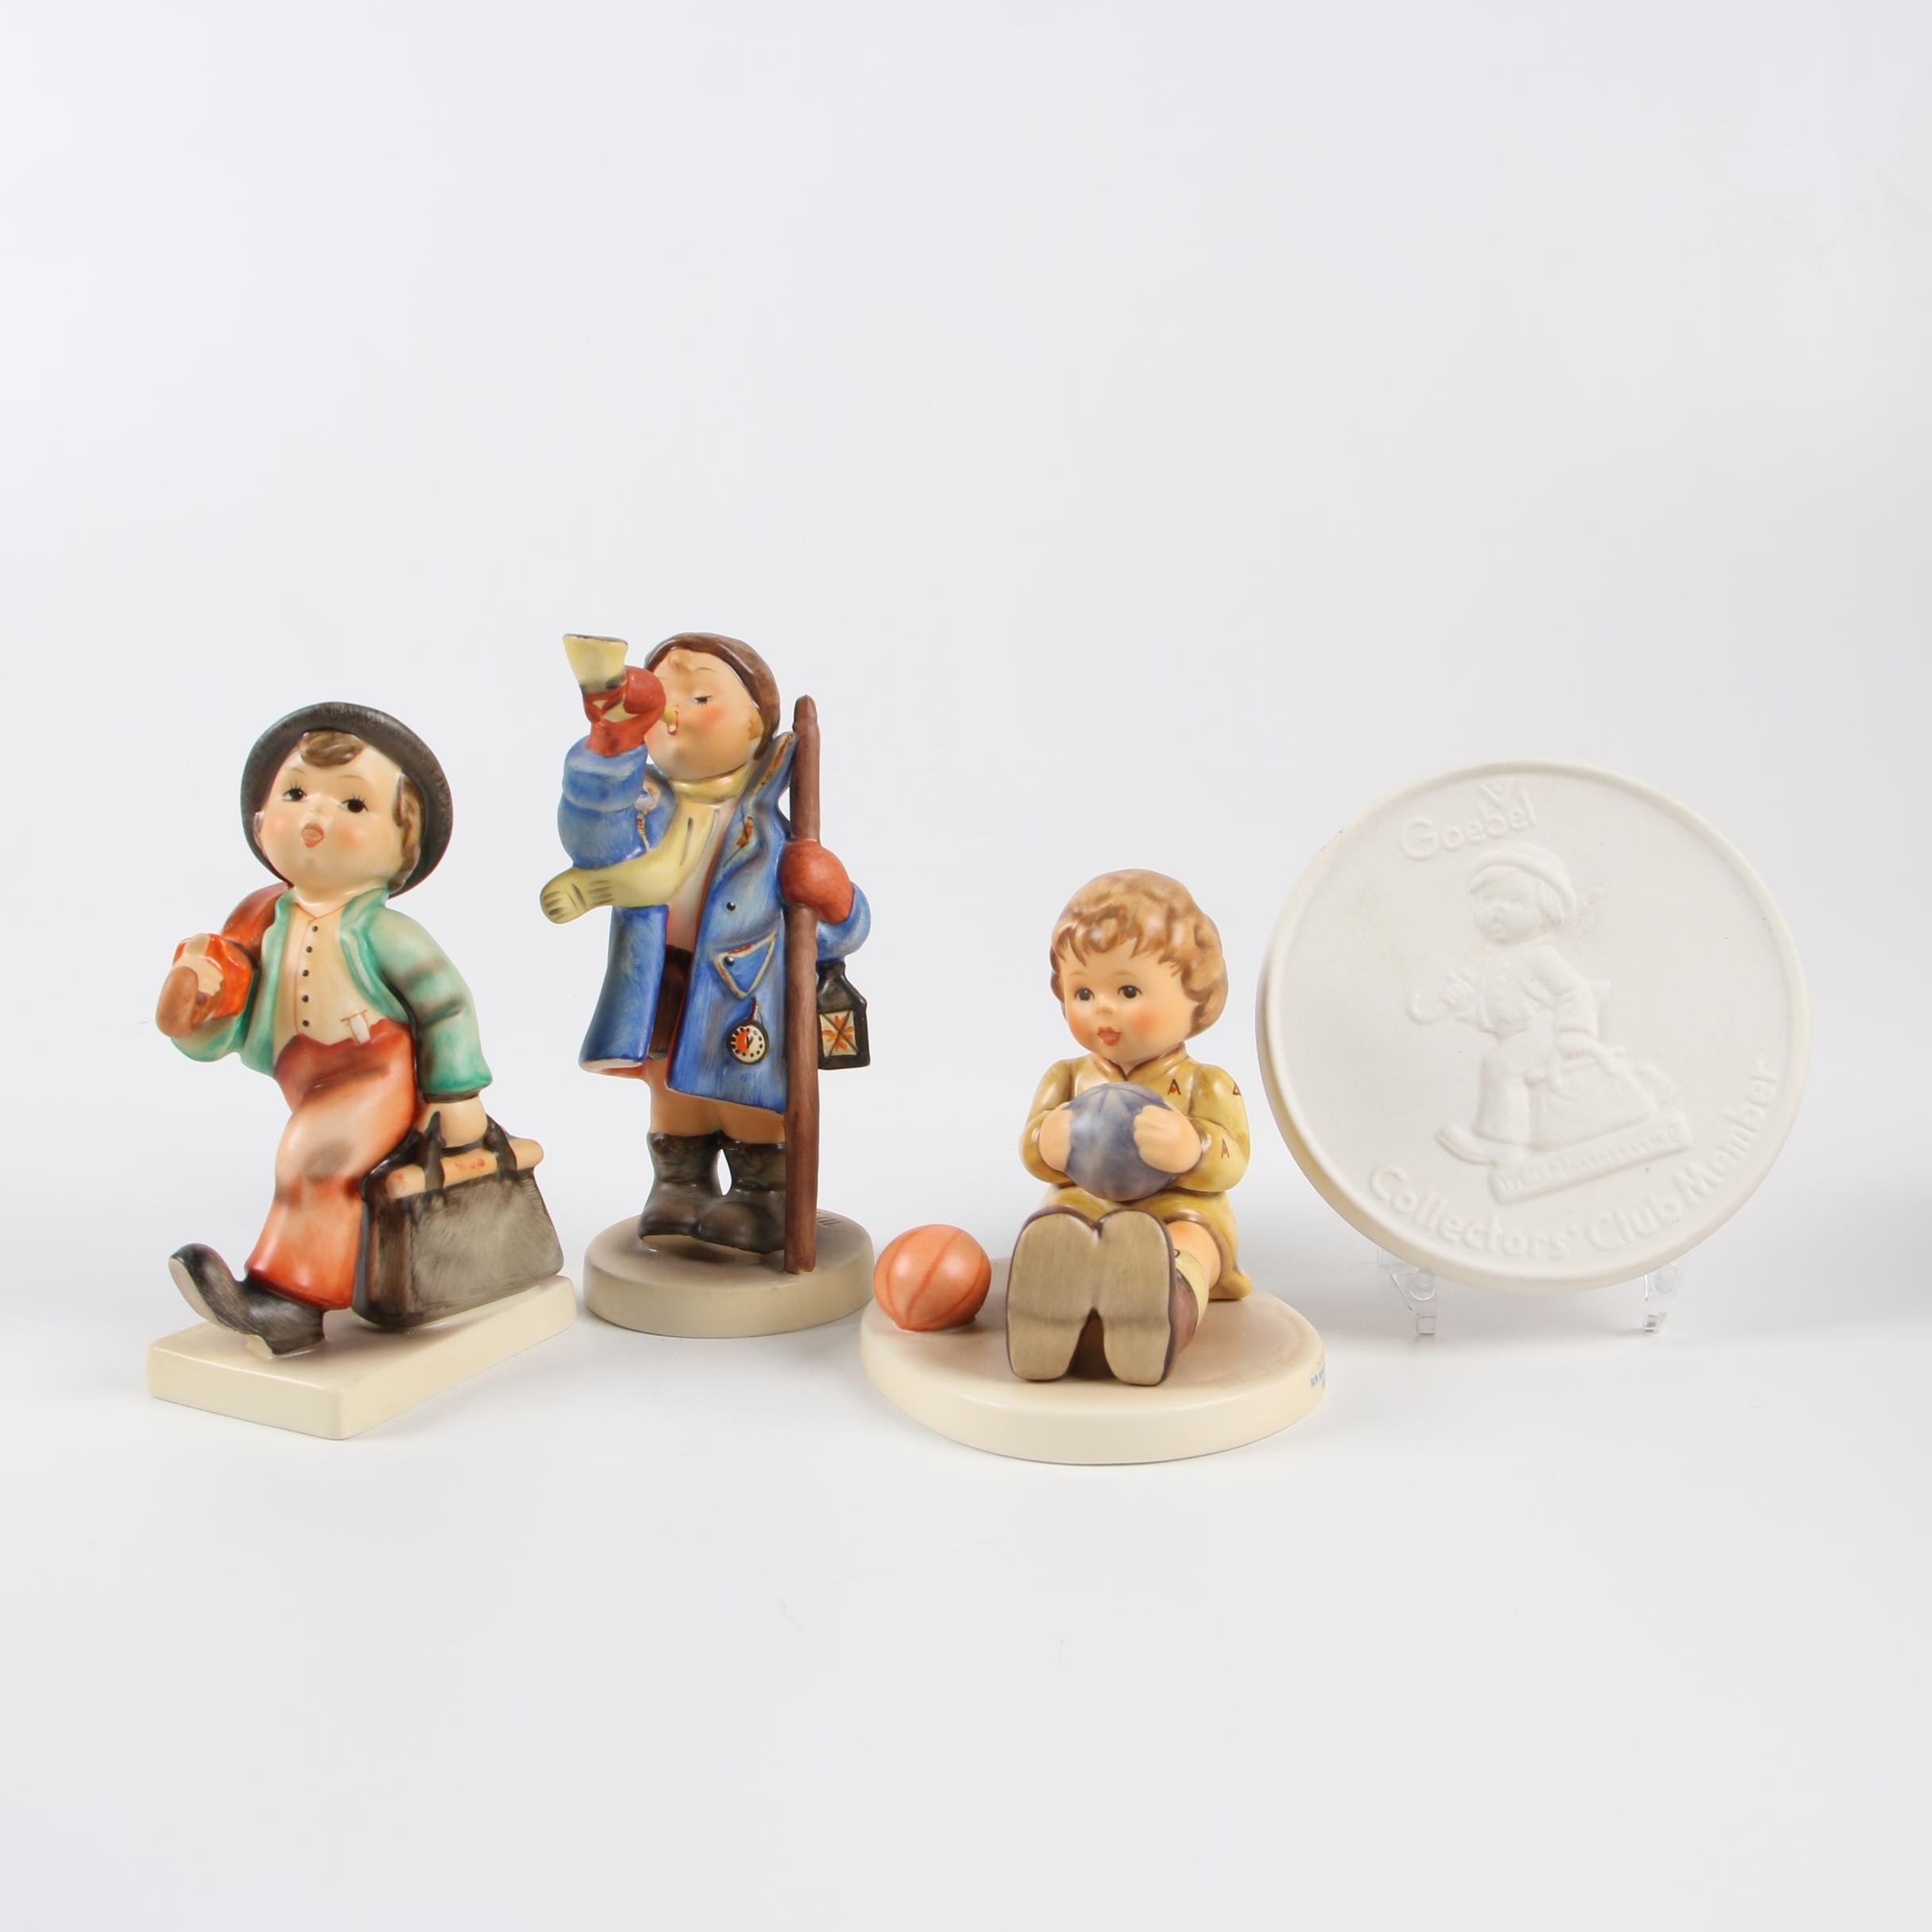 Goebel Hummel Porcelain Figurines and Bisque Plaque, Mid/Late 20th Century